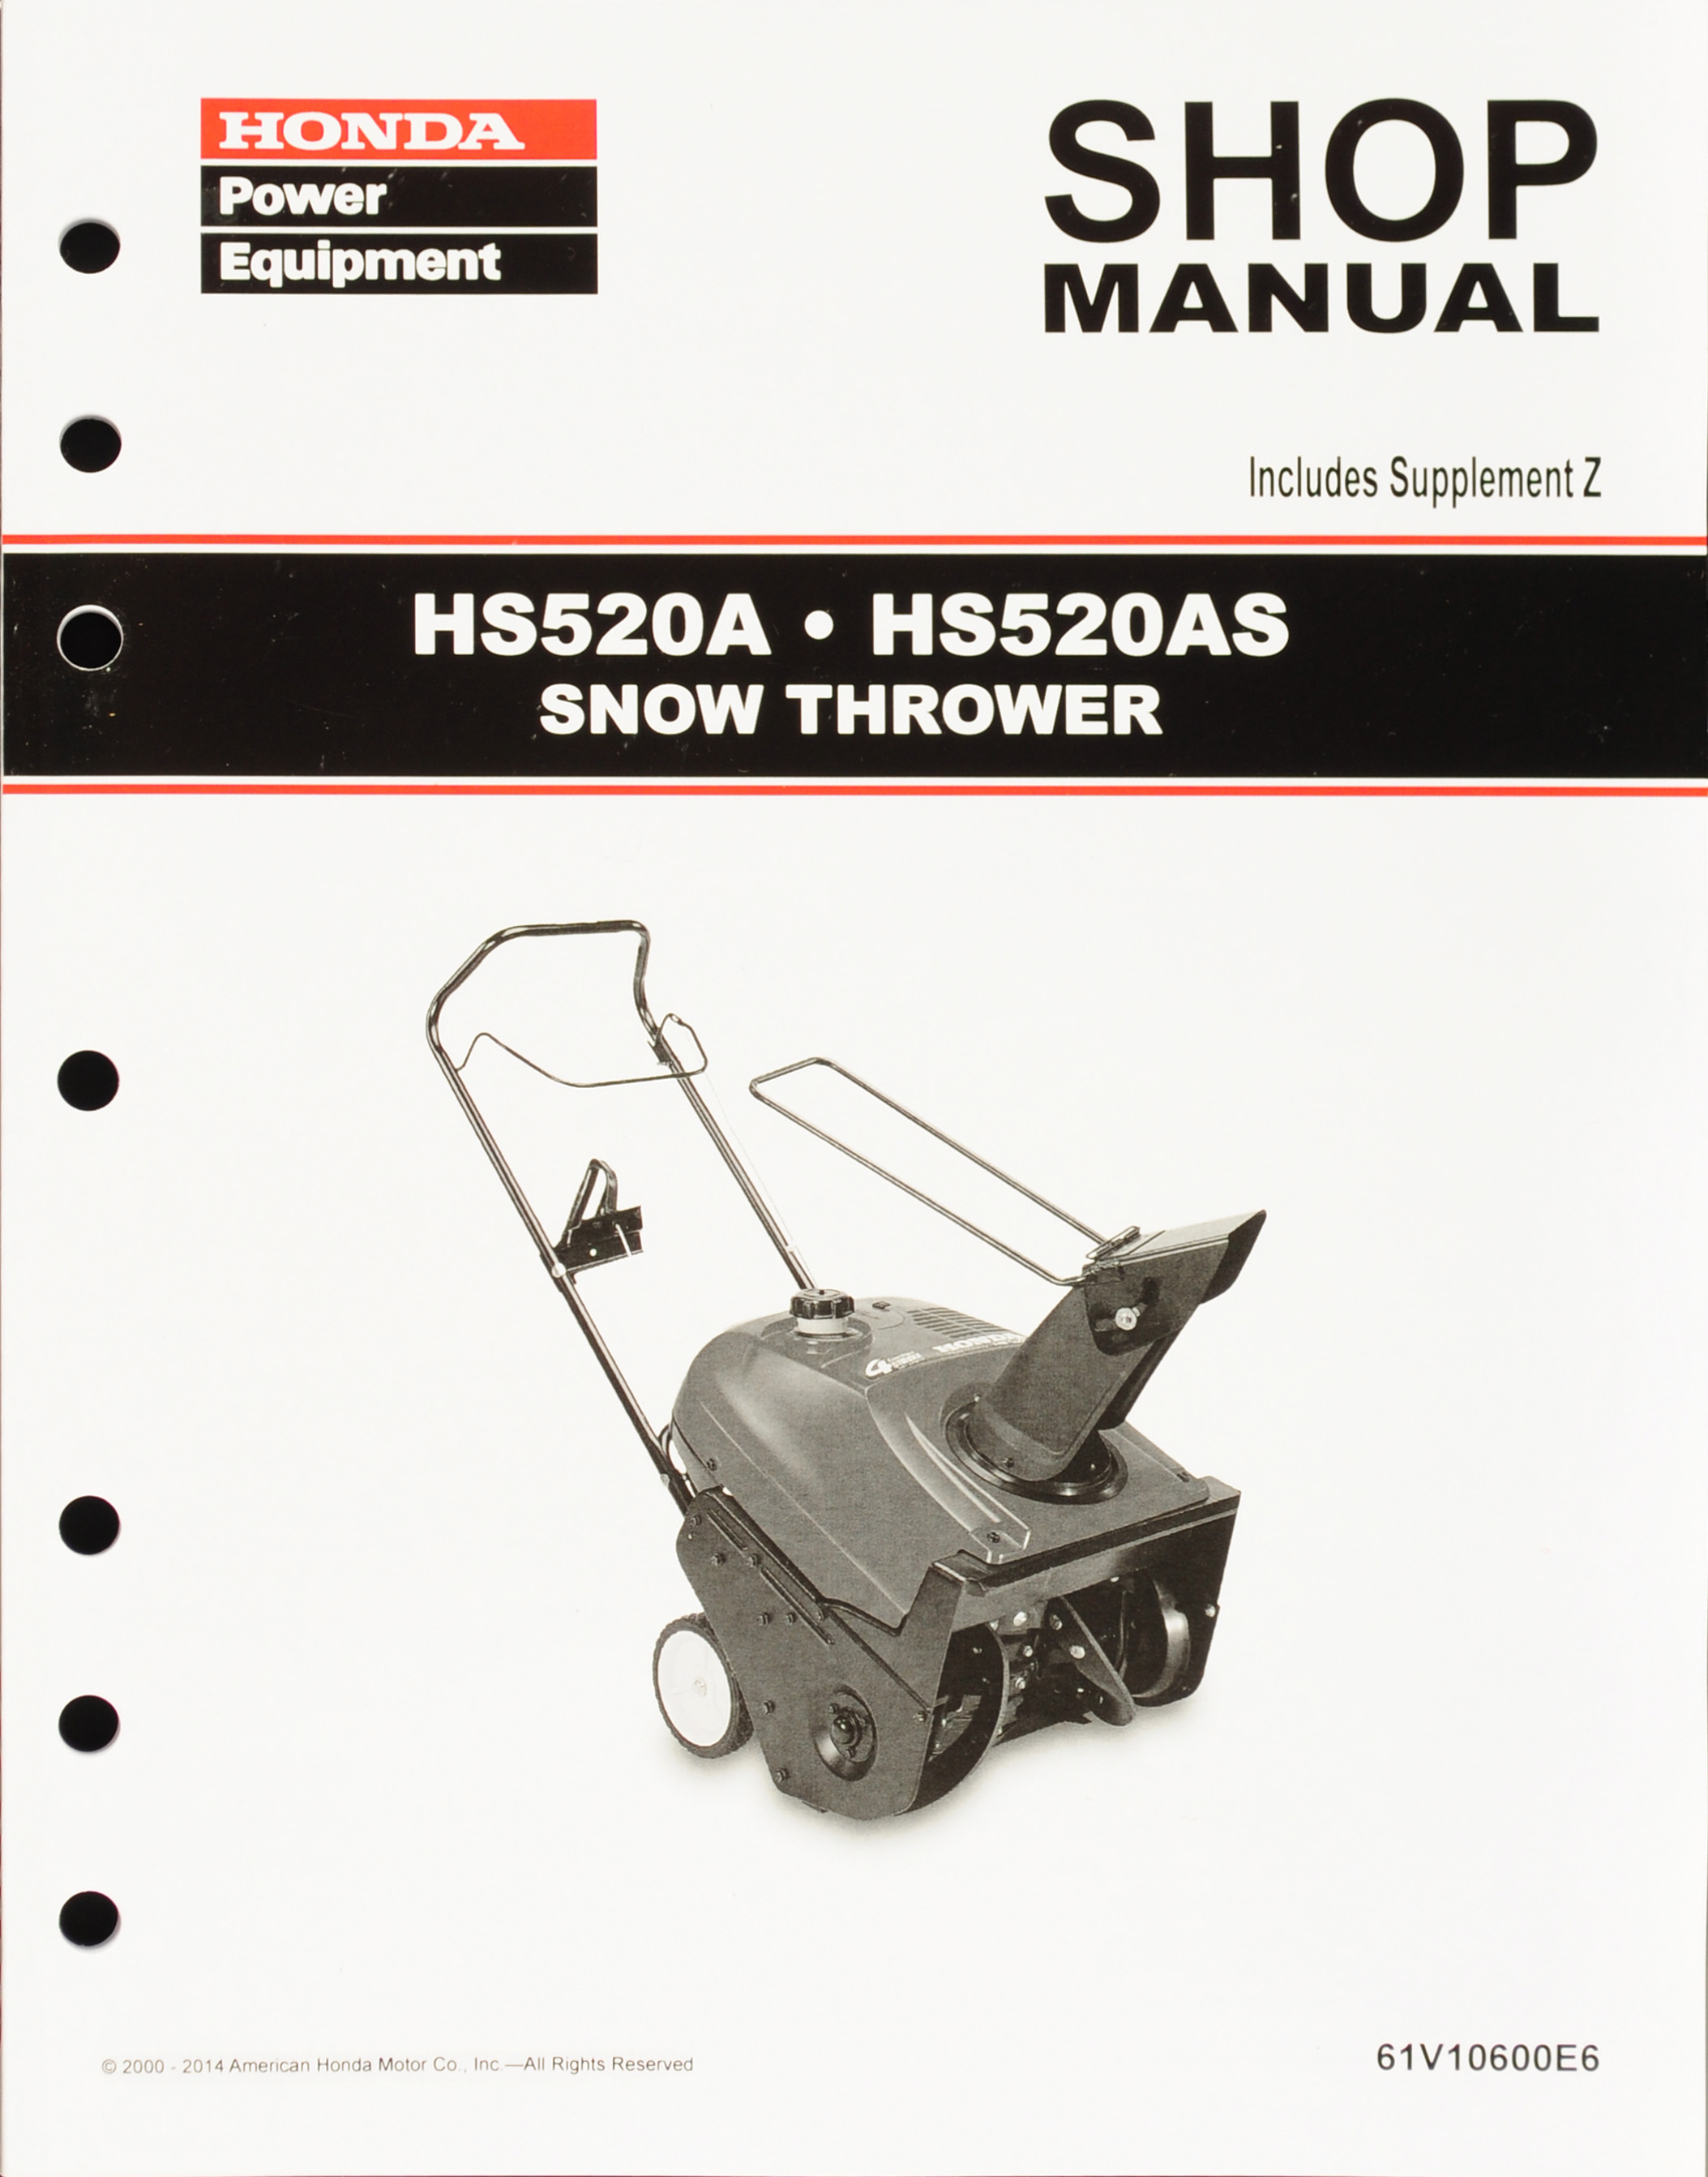 HS520A HS520AS Snow Thrower Shop Manual